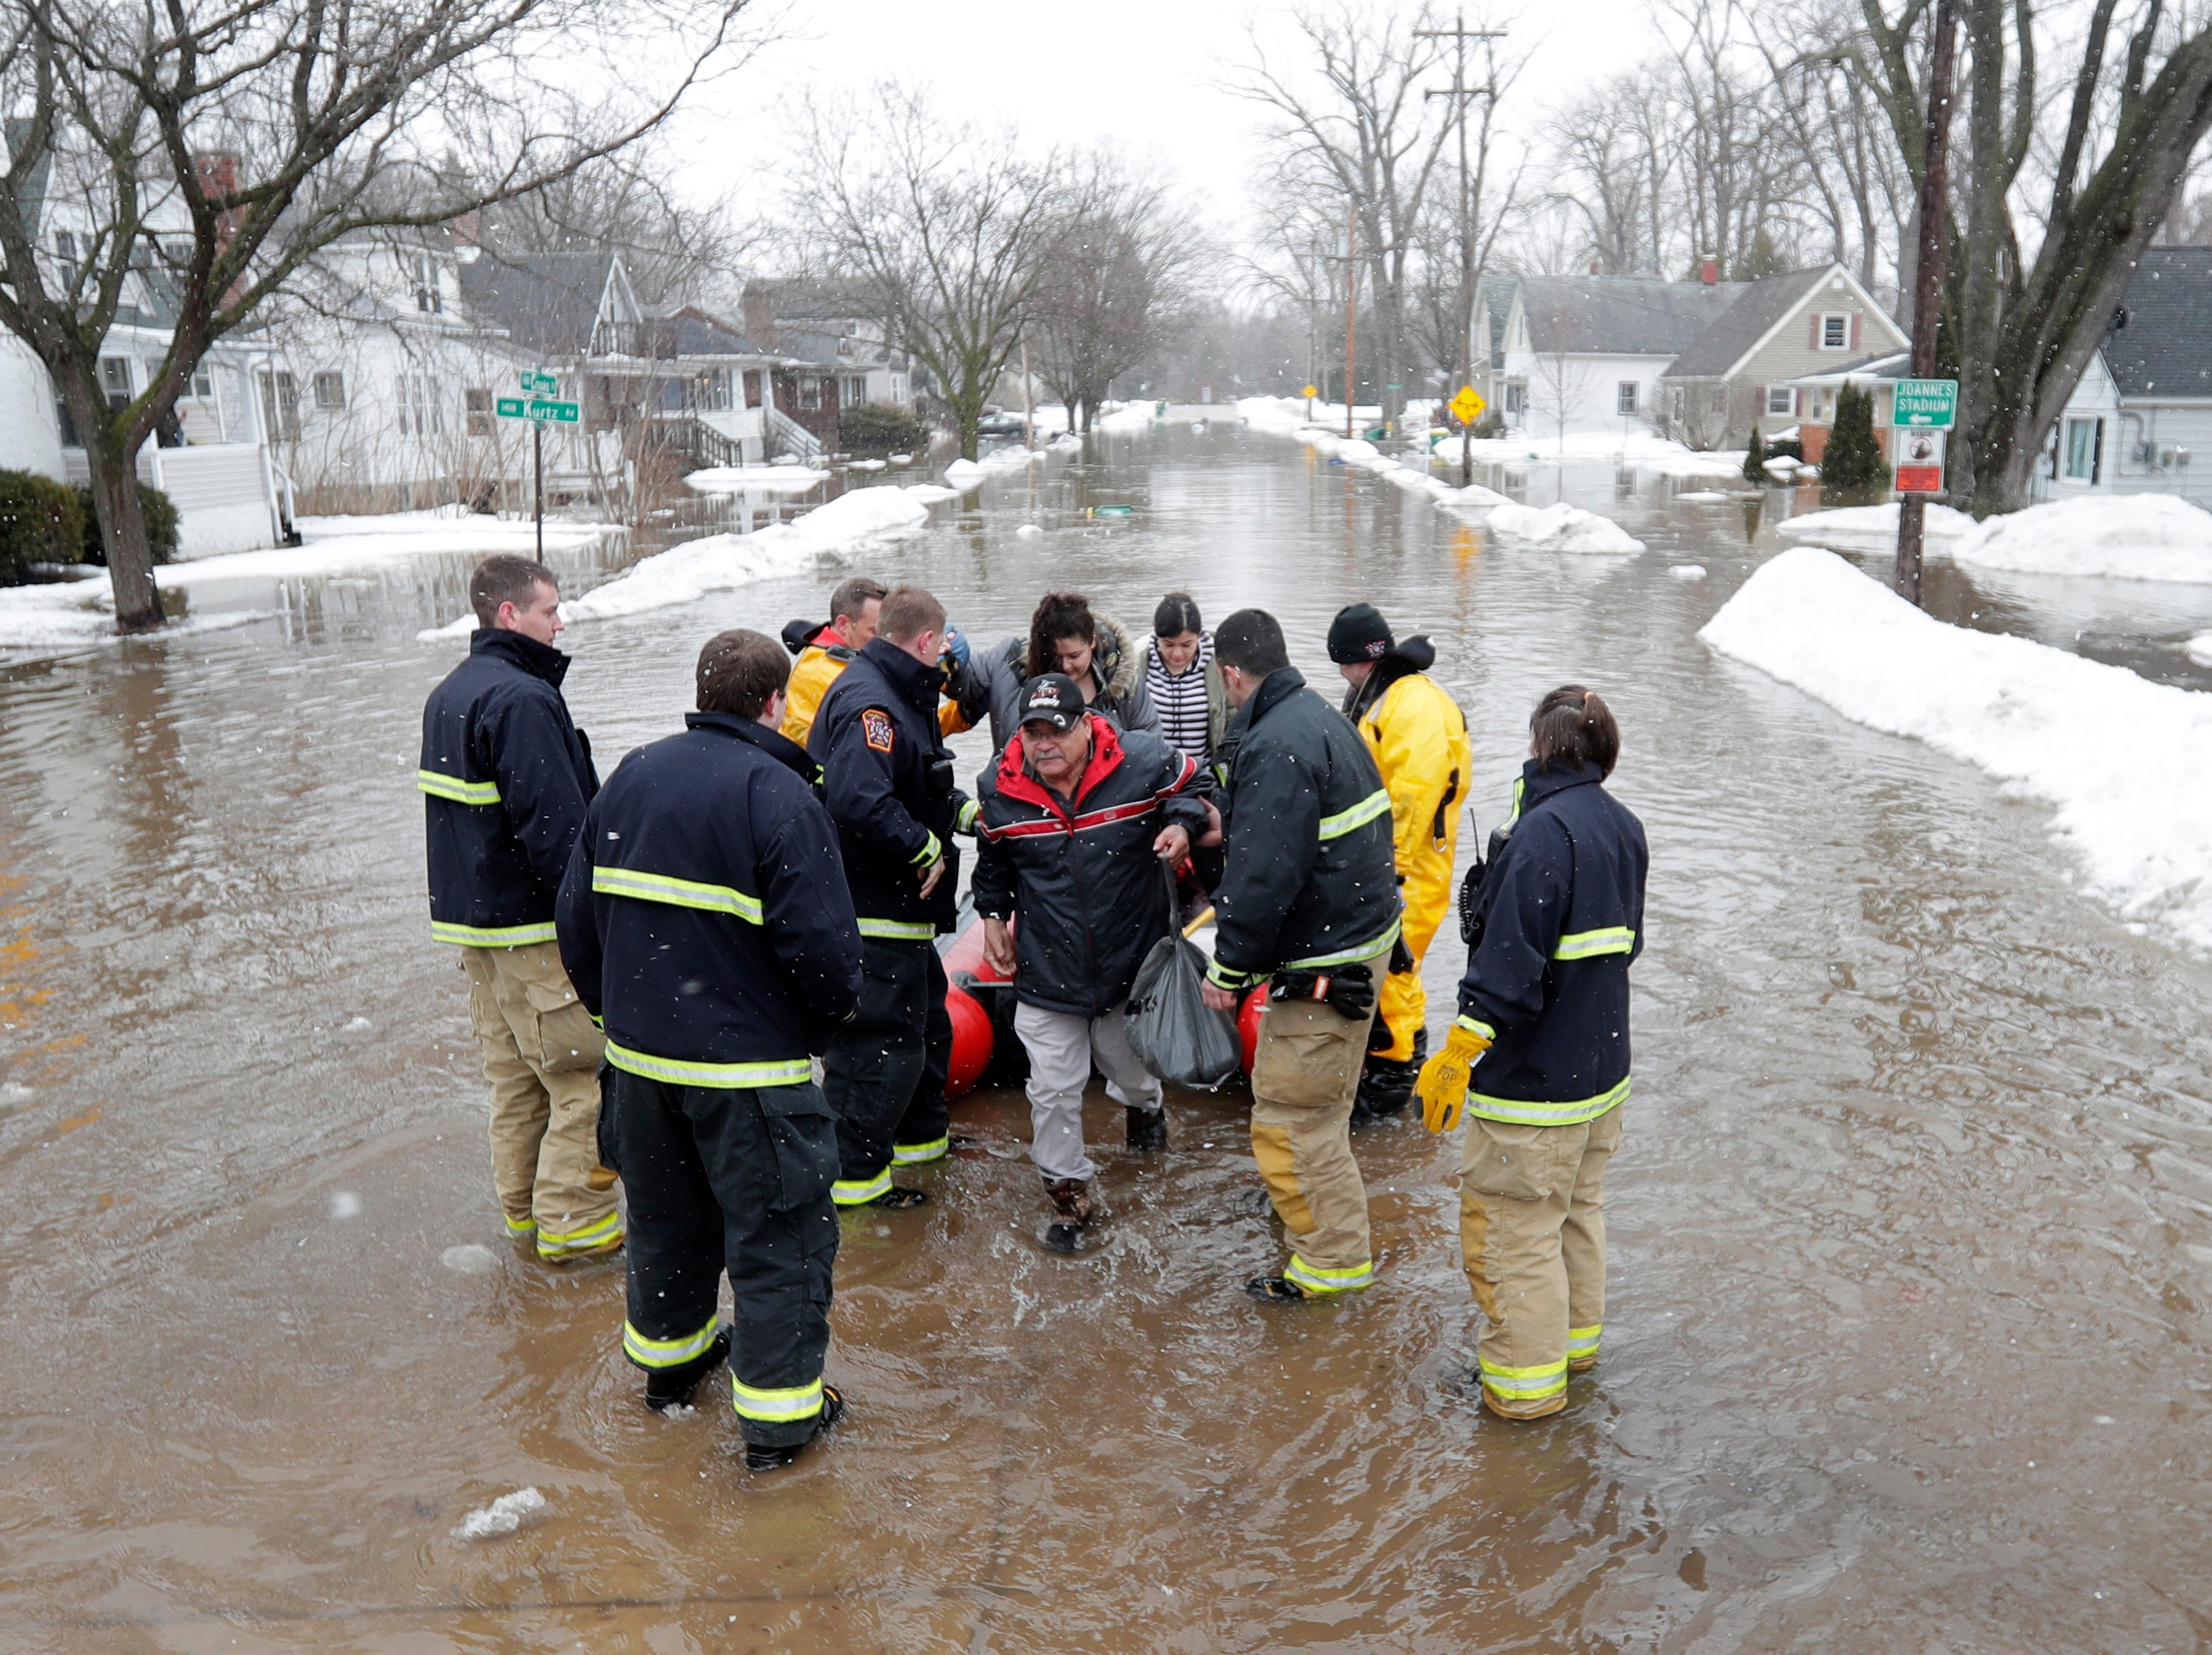 Firefighters assist residents on Crooks Street with evacuations due to the East river flooding on Friday, March 15, 2019 in Green Bay, Wis.